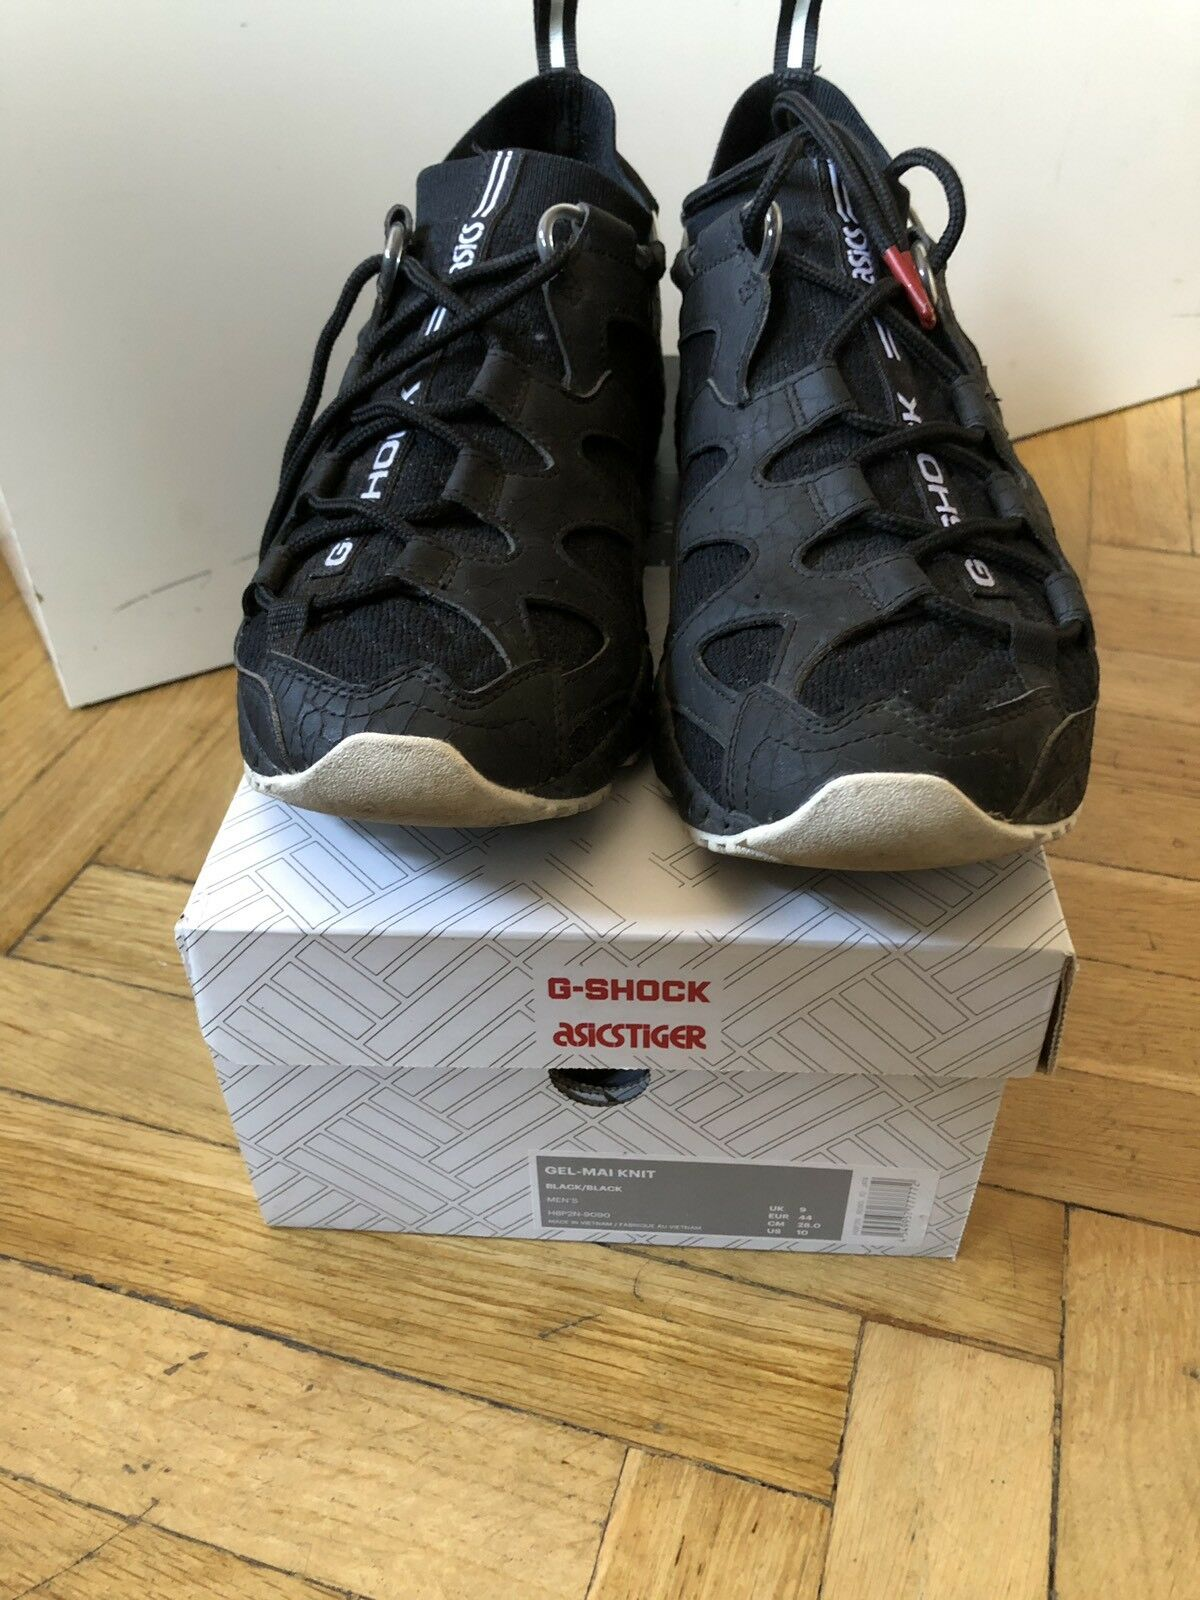 ASICS Gel x Gshock Gel Mai Knit EU 44 UK 9 US 10